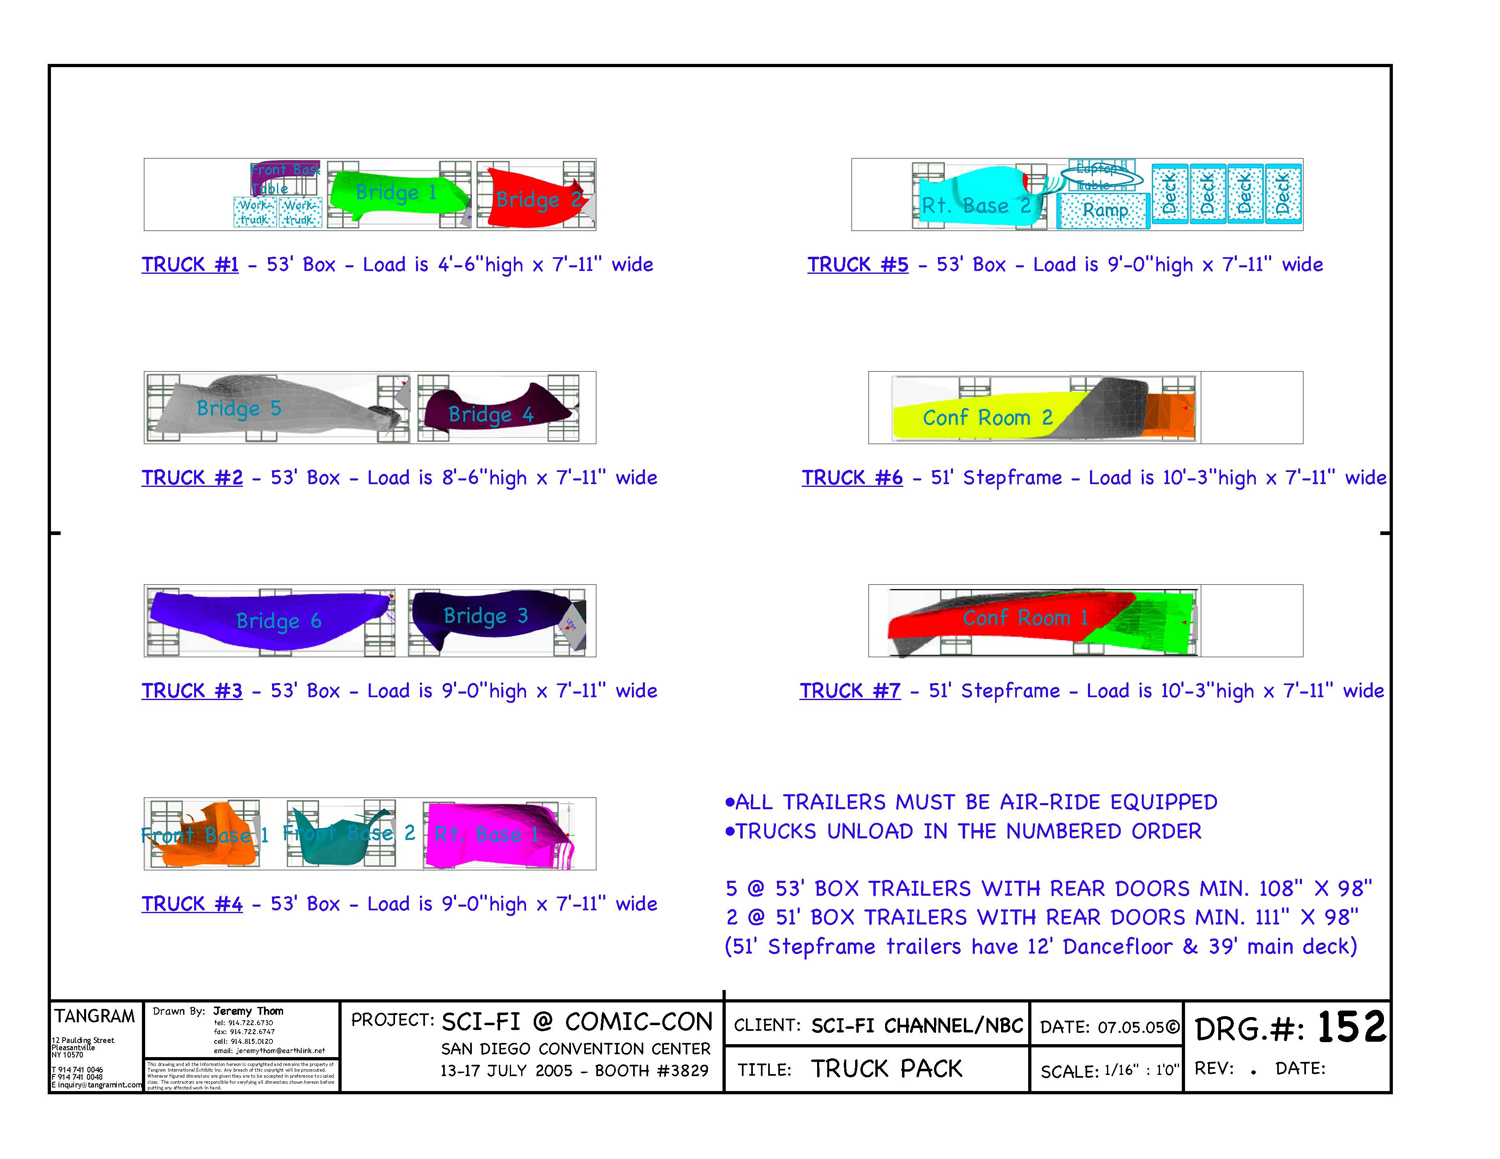 Truck pack drawings for all scenic elements of structure